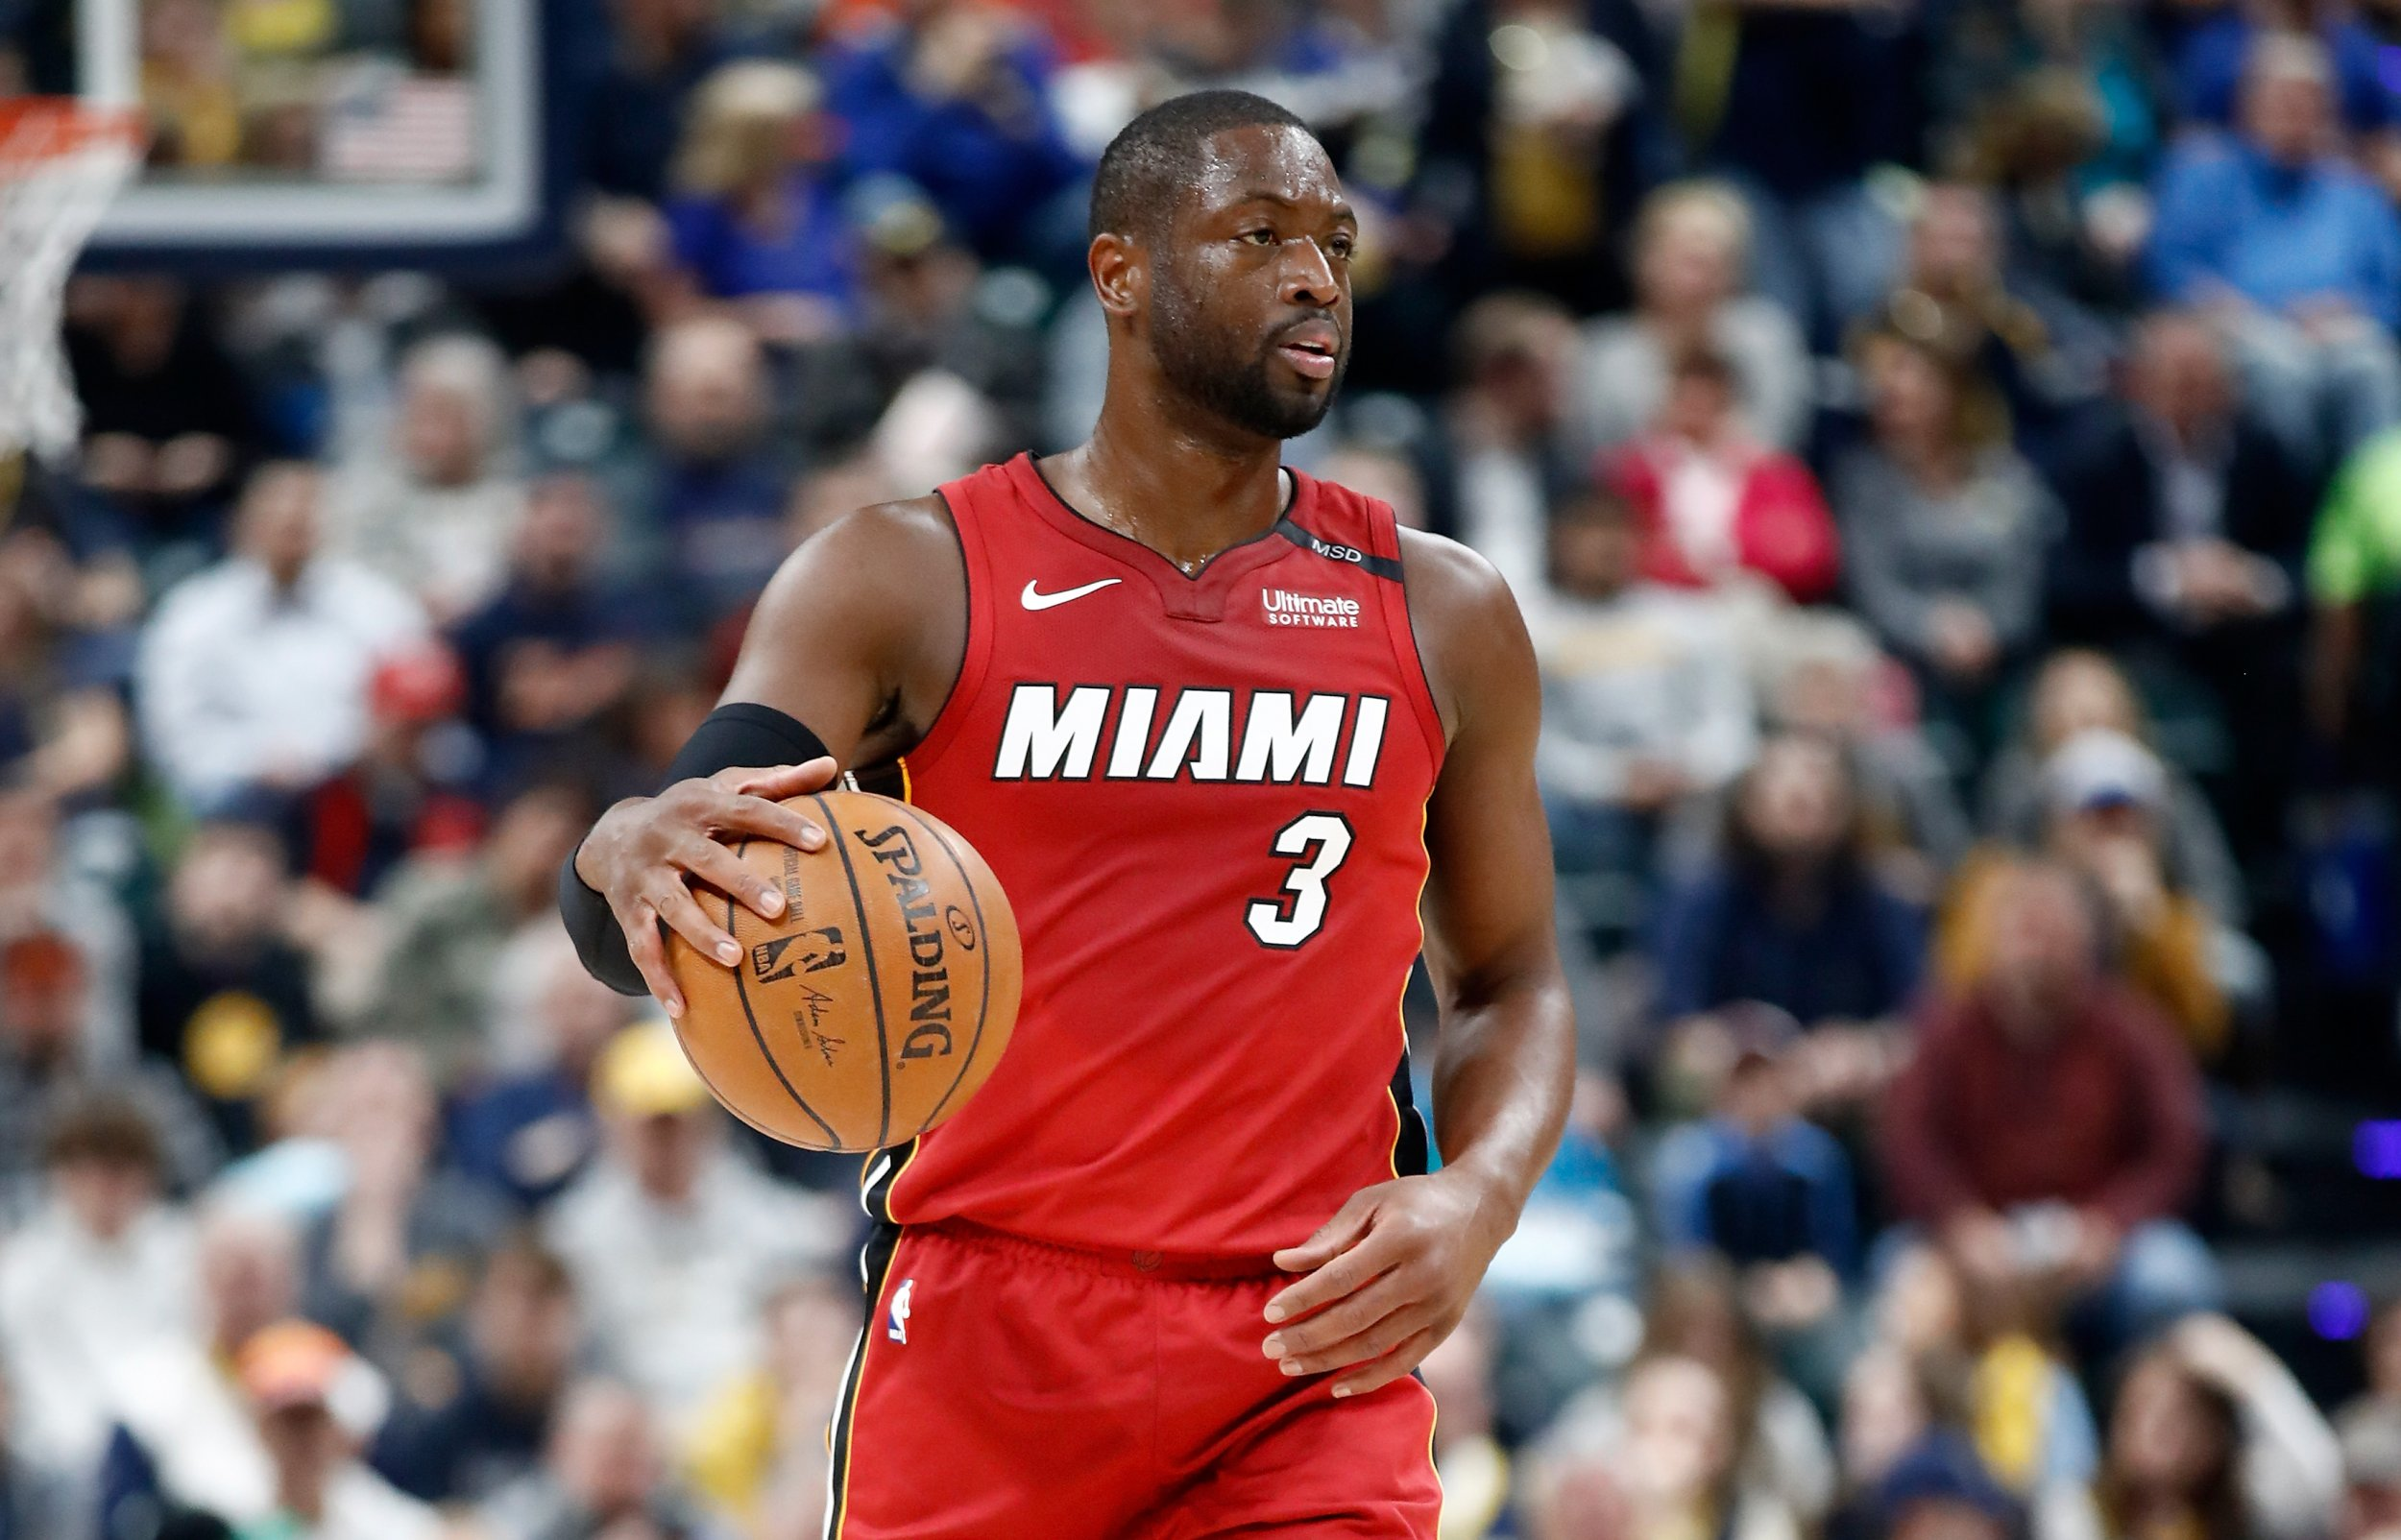 Nba Basketball Miami Heat Bedroom In: Will Dwyane Wade Go To China? NBA Star Offered Record Deal